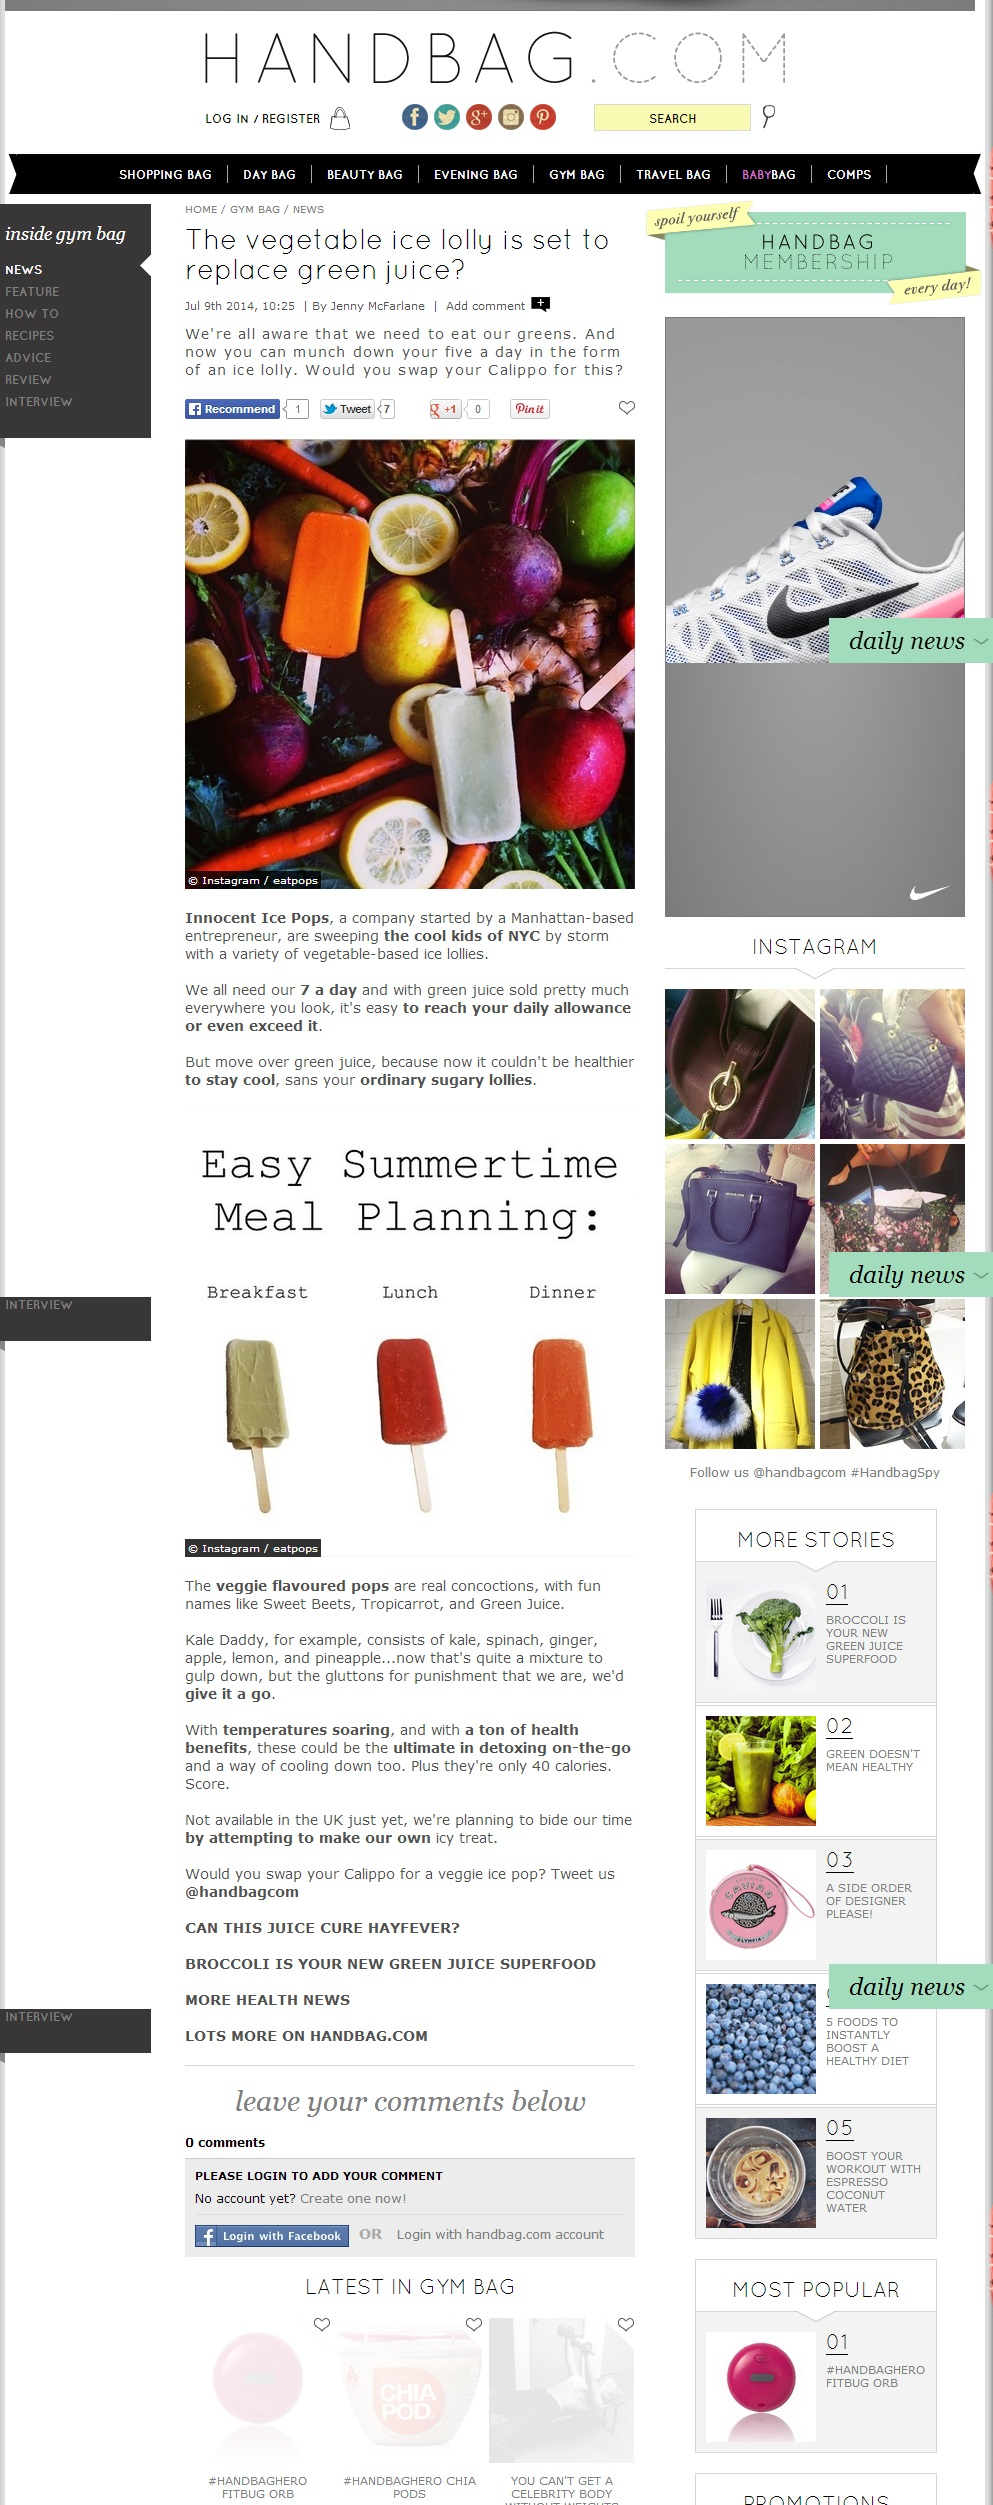 screencapture-www-handbag-com-gym-bag-news-a583020-the-vegetable-ice-lolly-is-set-to-replace-green-juice-html